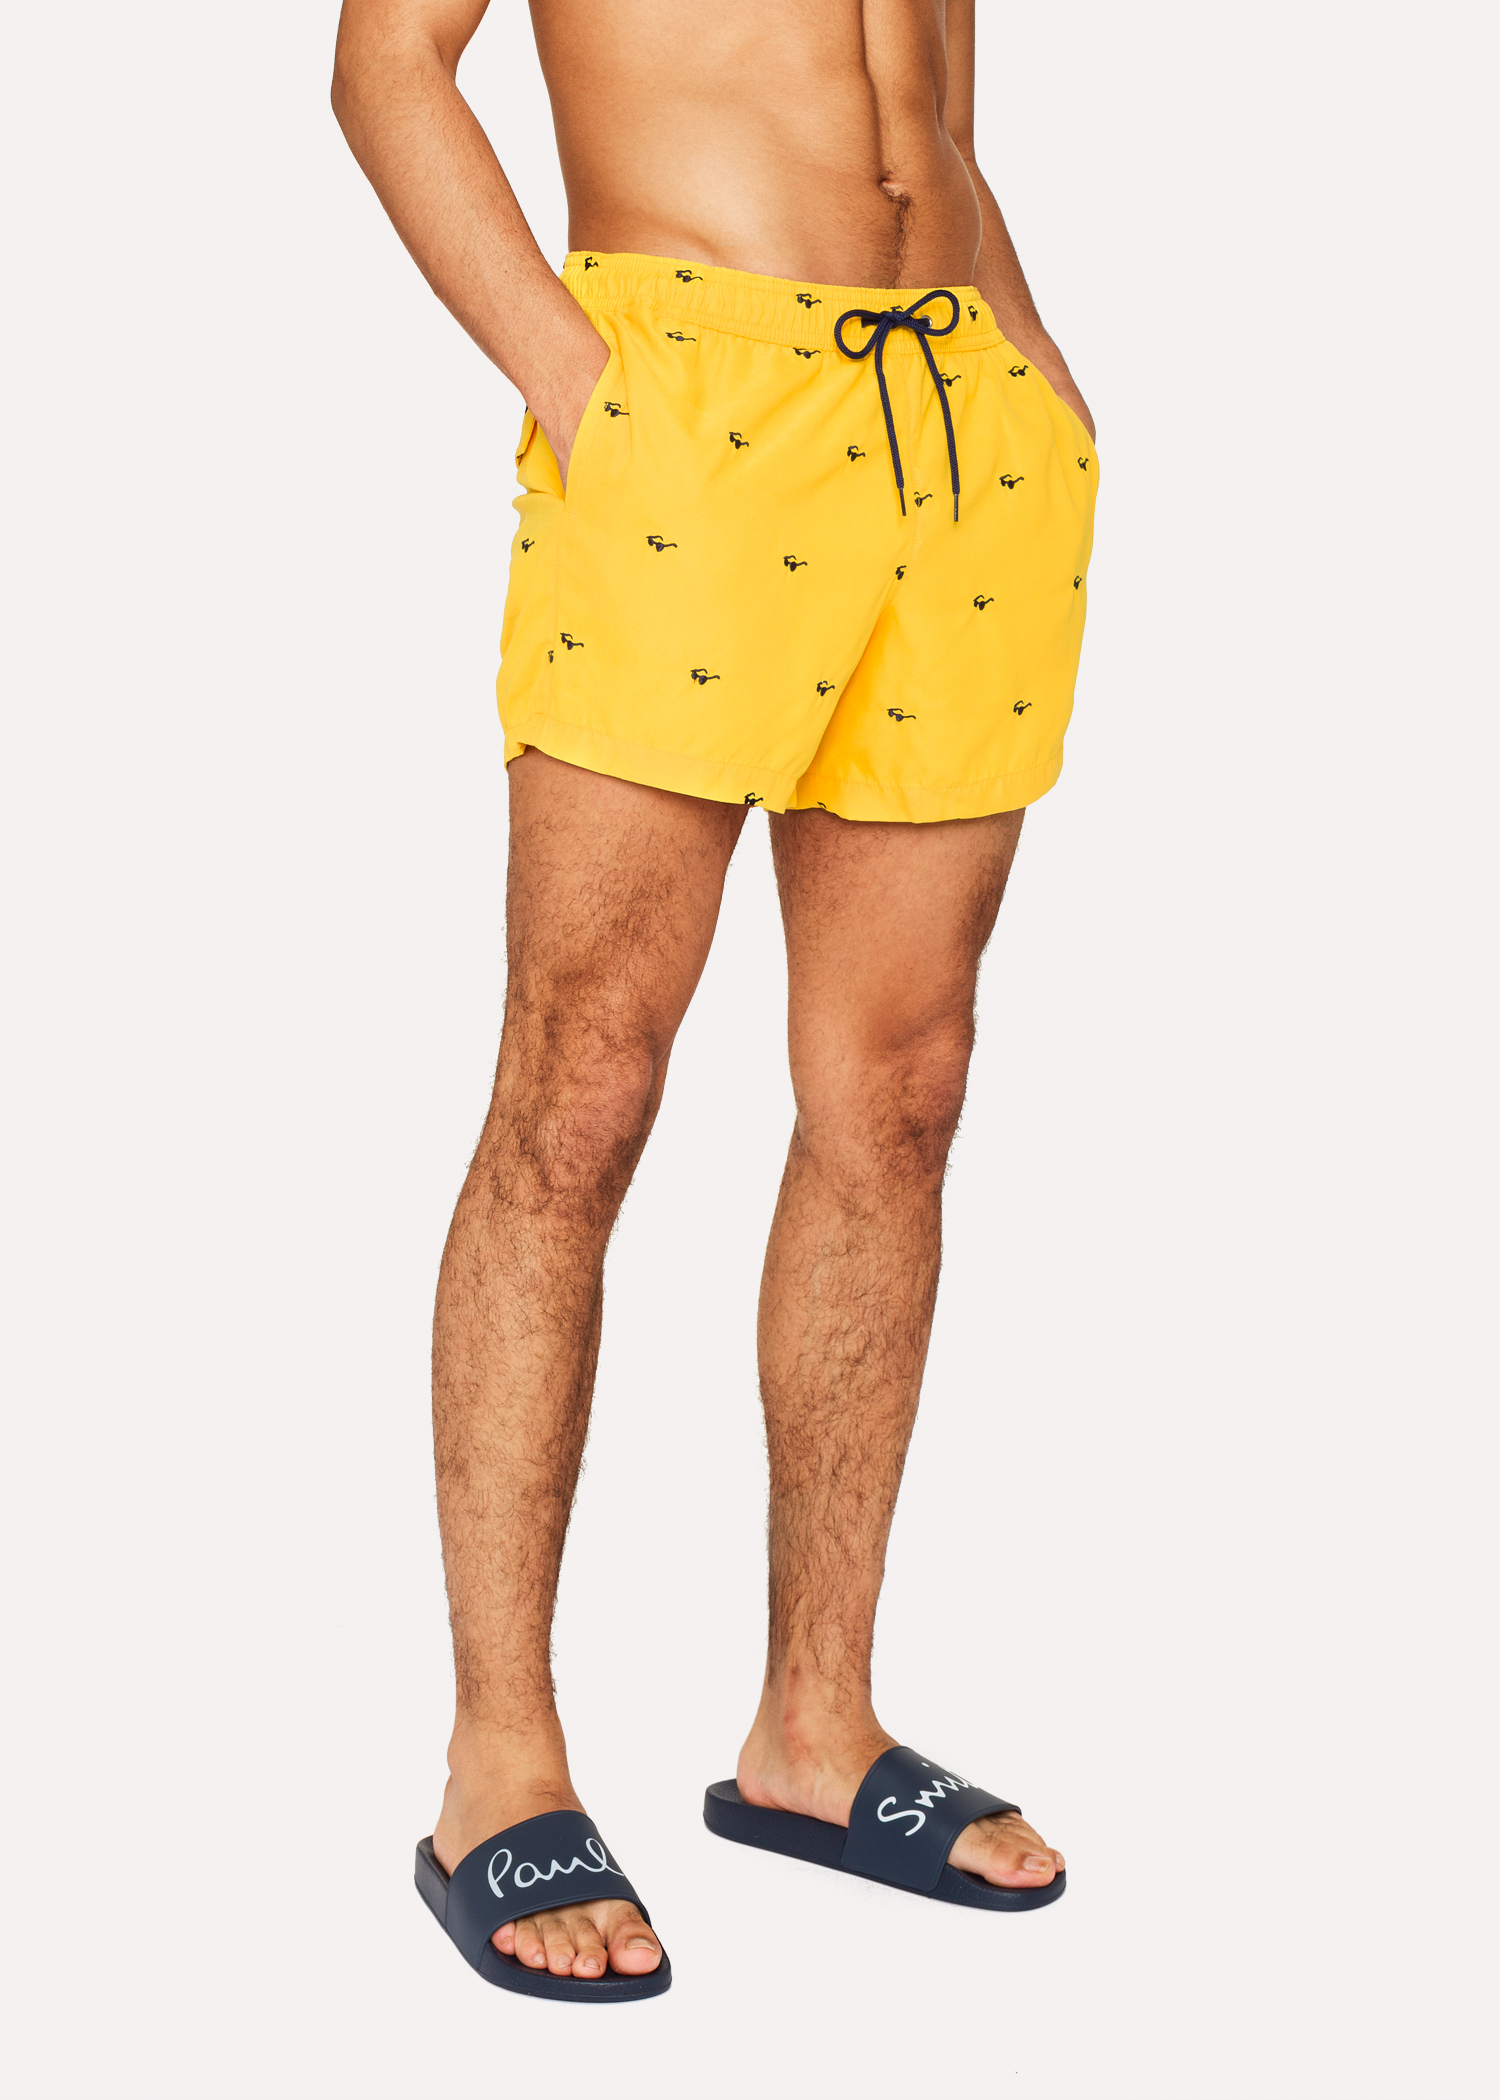 9e44164505 Short De Bain Paul Smith Homme Jaune Brodé 'Sunglasses' Paul Smith ...